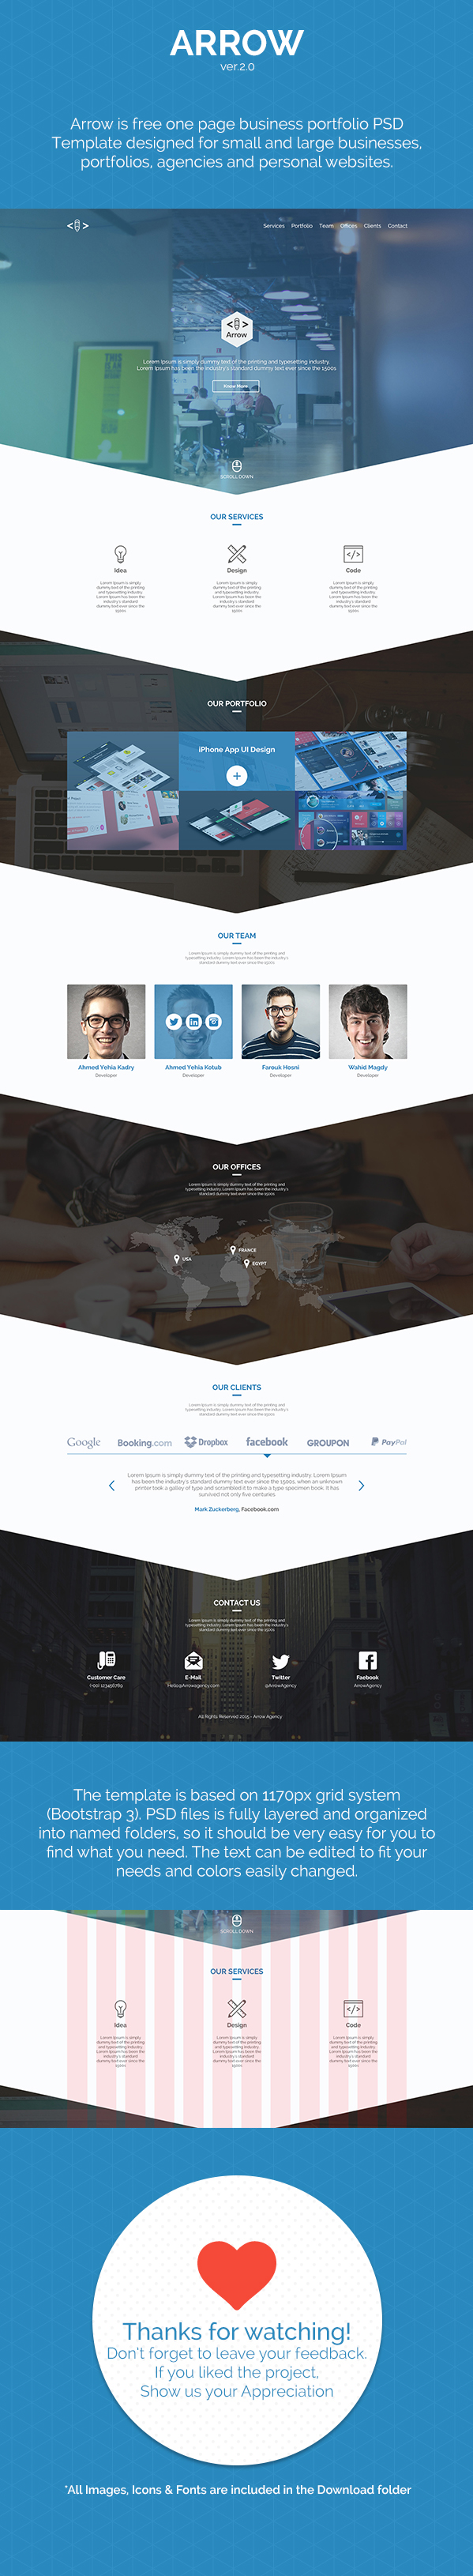 Arrow free one page business portfolio psd template on behance arrow free one page business portfolio psd template on behance flashek Image collections